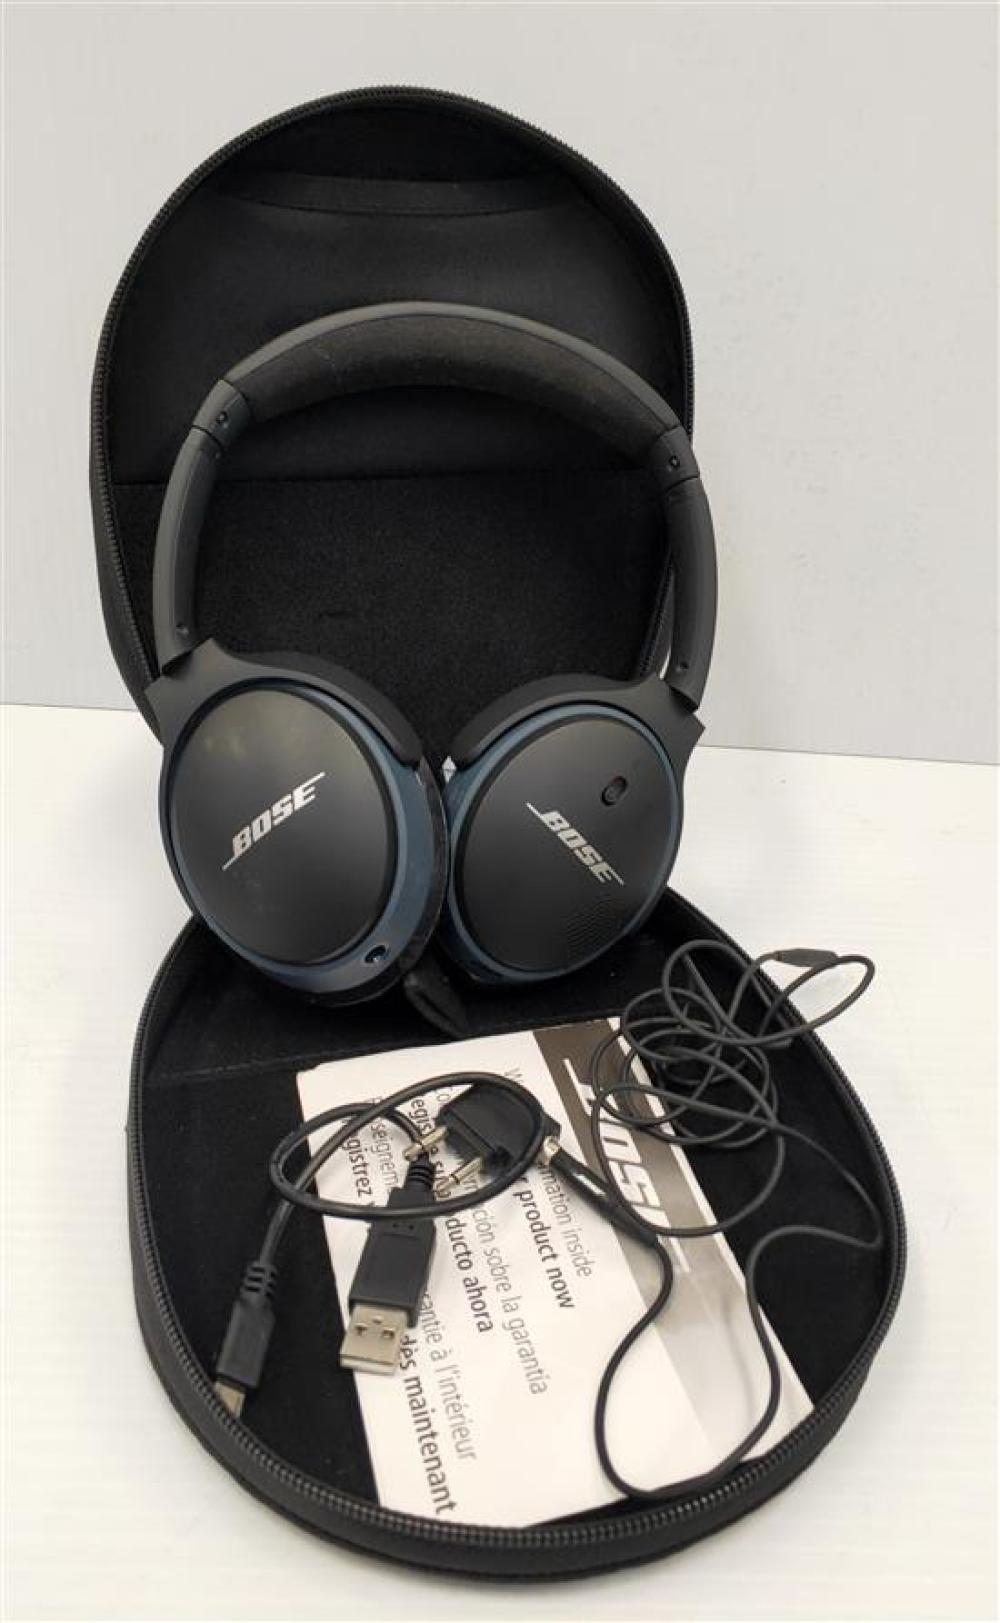 A pair of wireless headphones marked Bose, with cables